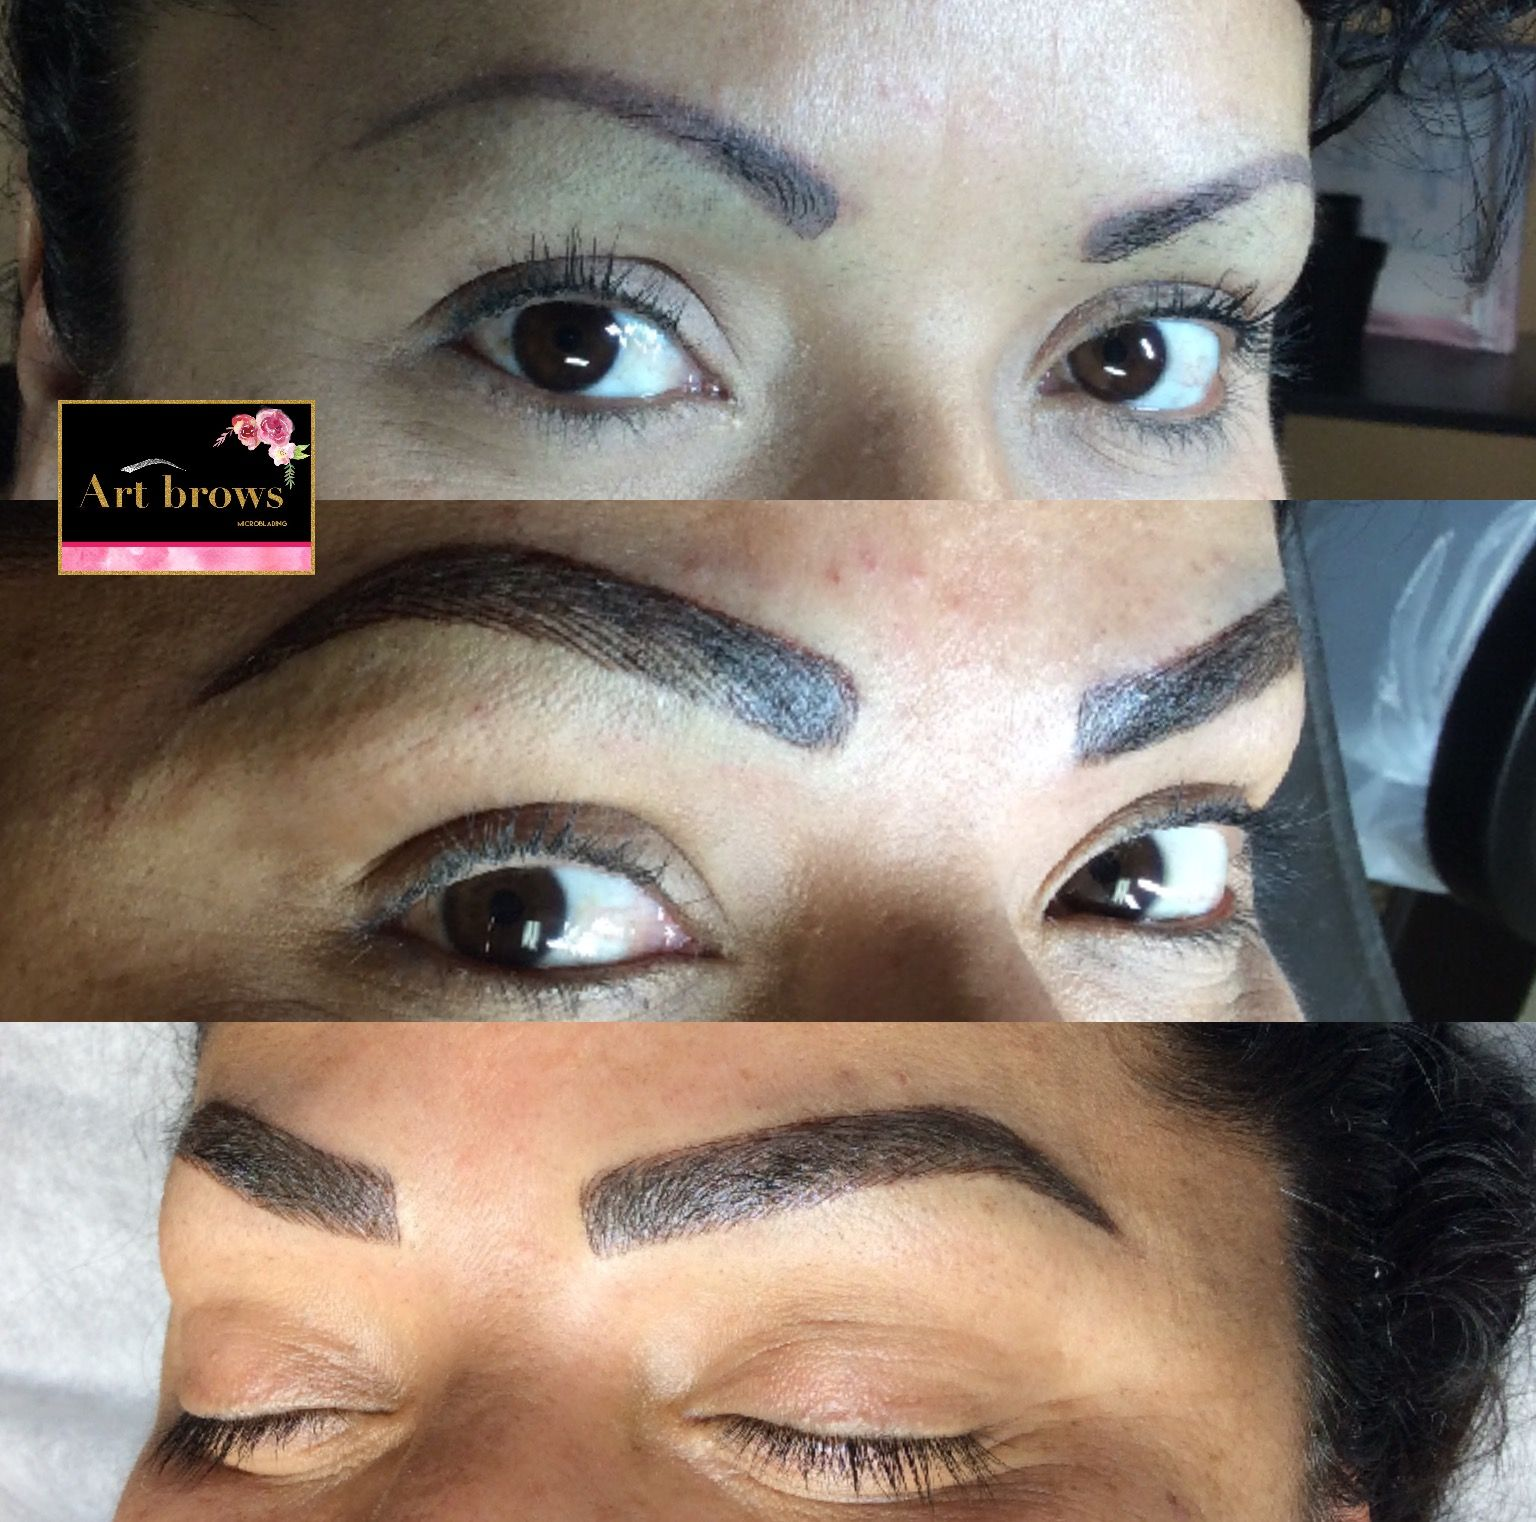 Pin By Art Brows On Microblading Art Brows Pinterest